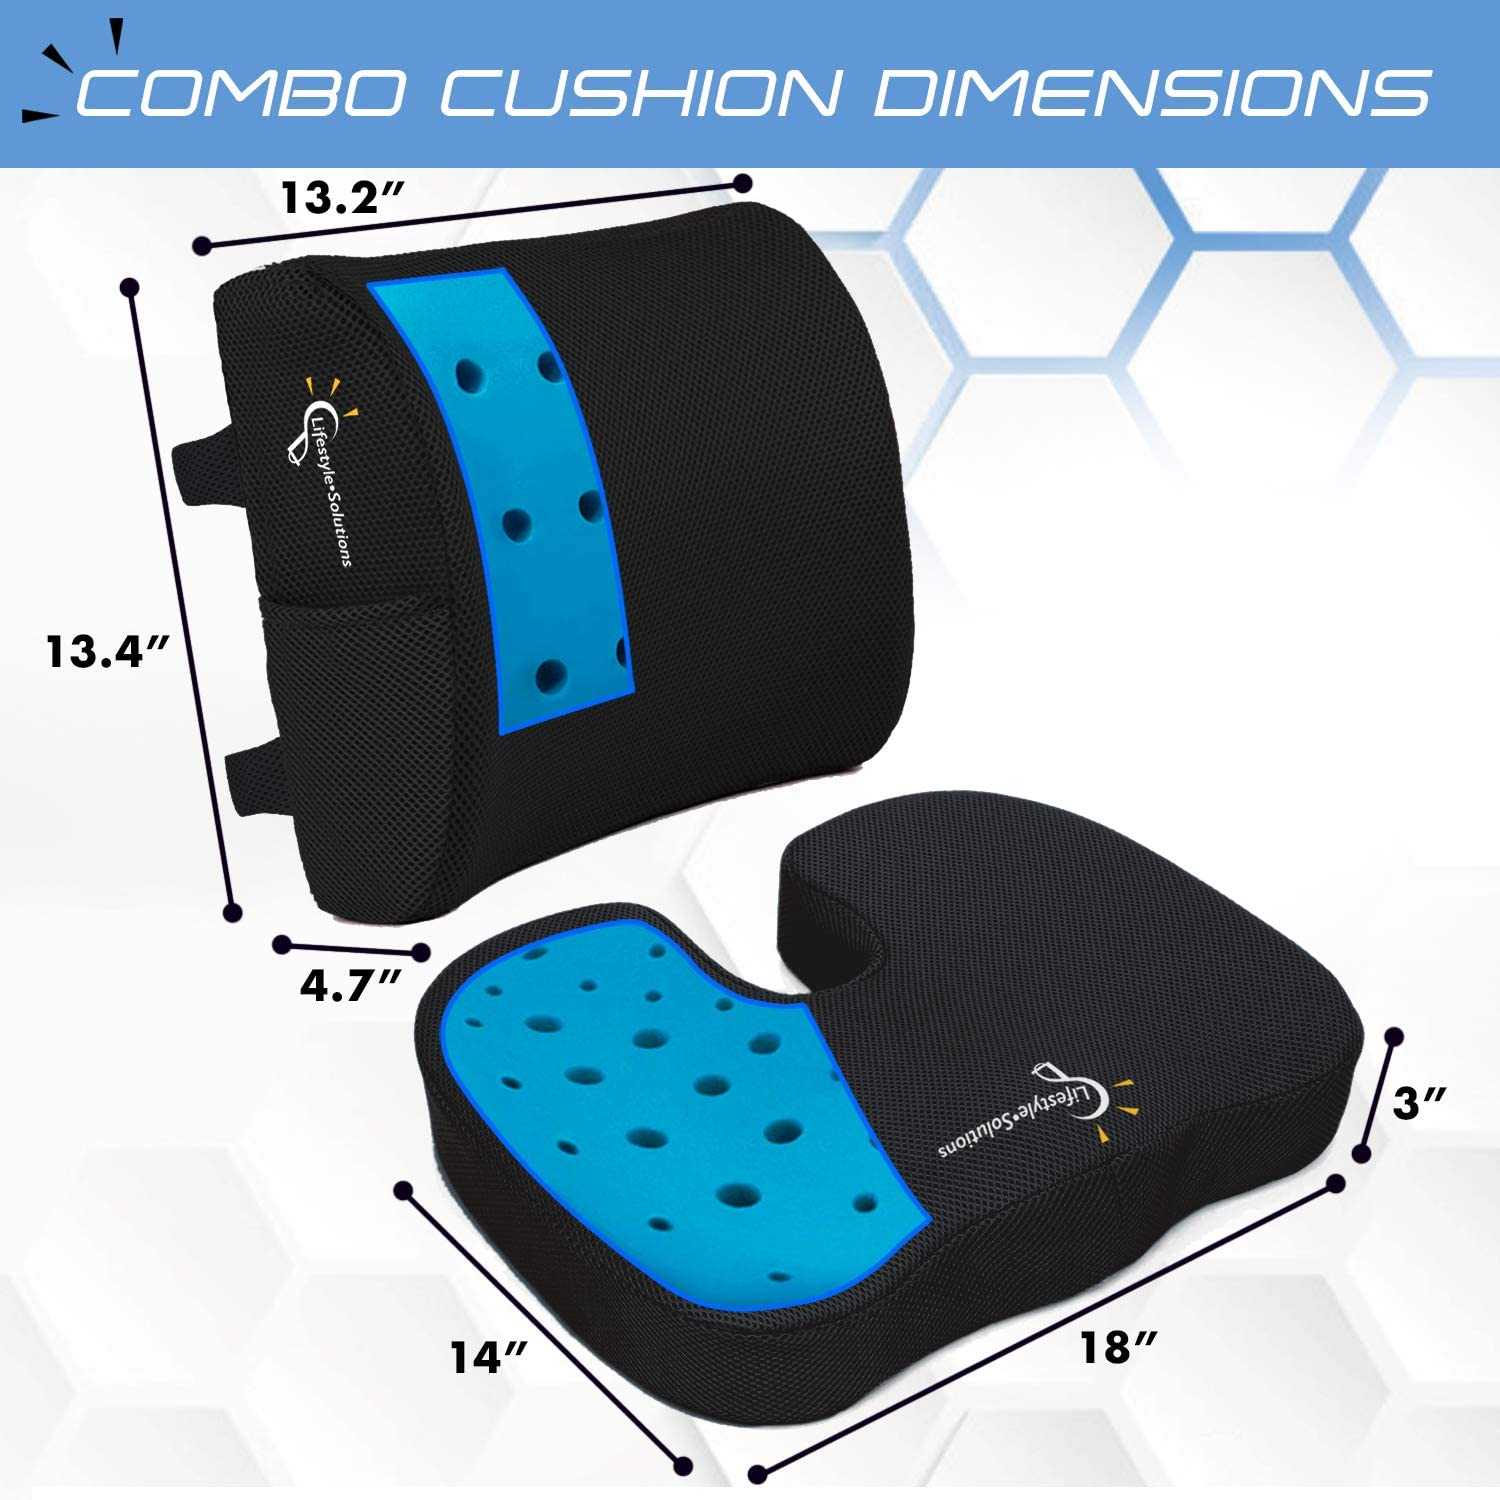 Lifestyle Memory Foam Seat Cushion and Lumbar Back Cushion Combo, Gel Infused Ventilated, Orthopedic Design for Coccyx Tailbone Pain and Sciatica, Perfect for Office Chair: Home & Kitchen